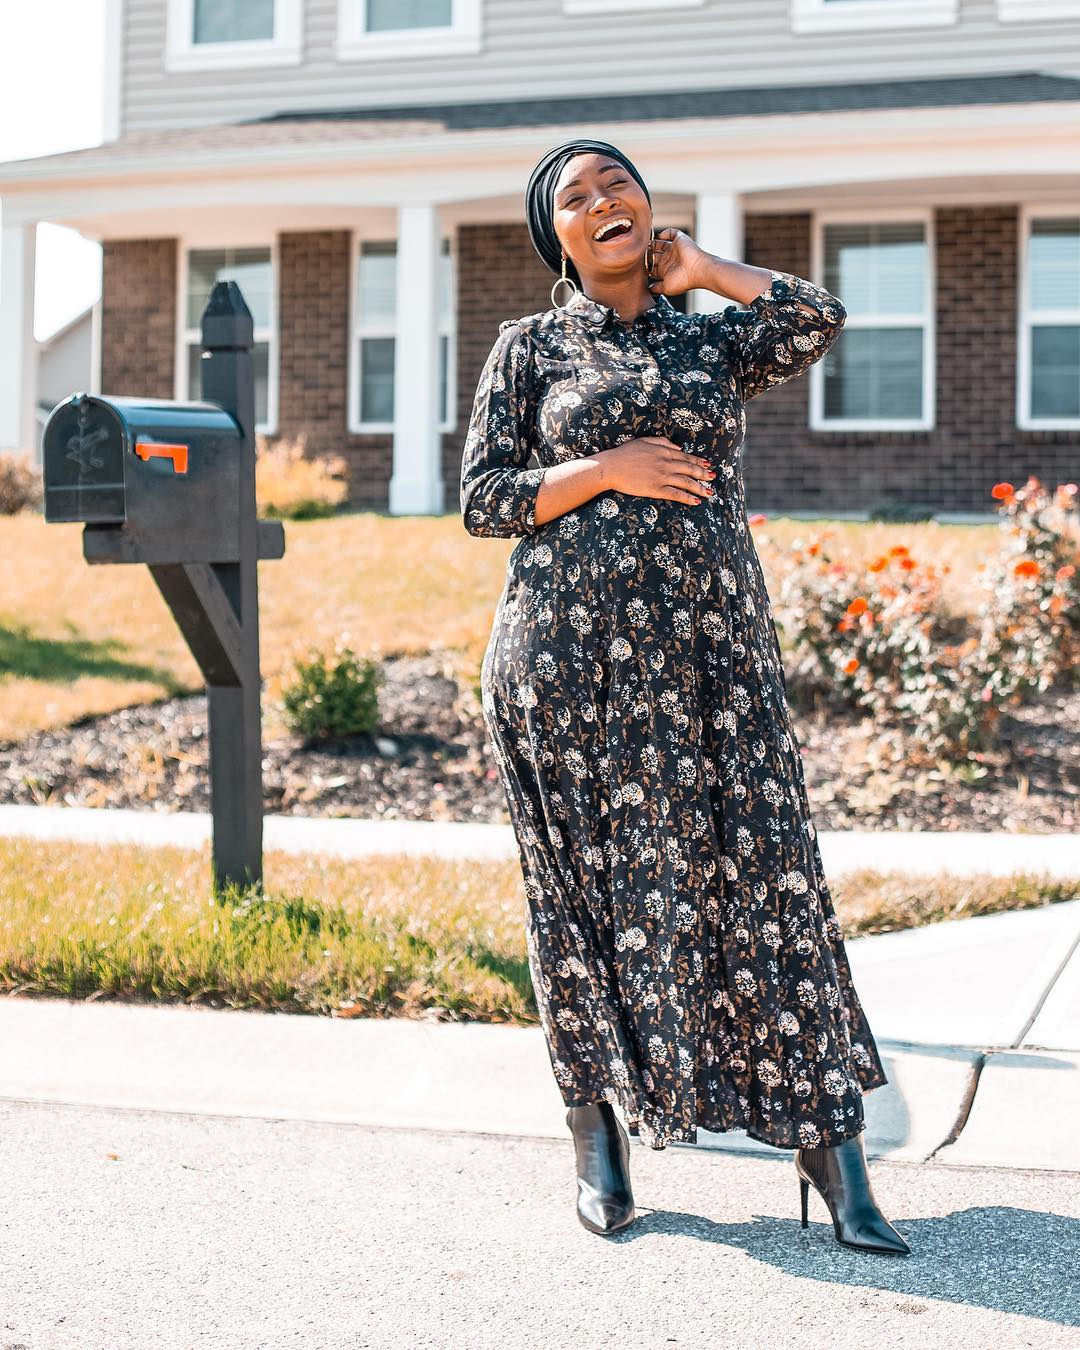 Aicha Balde   is a fashion and lifestyle influencer creating content with the millennial mom in mind. Raised in Guinea, West Africa, she's now based in Indianapolis, Indiana.